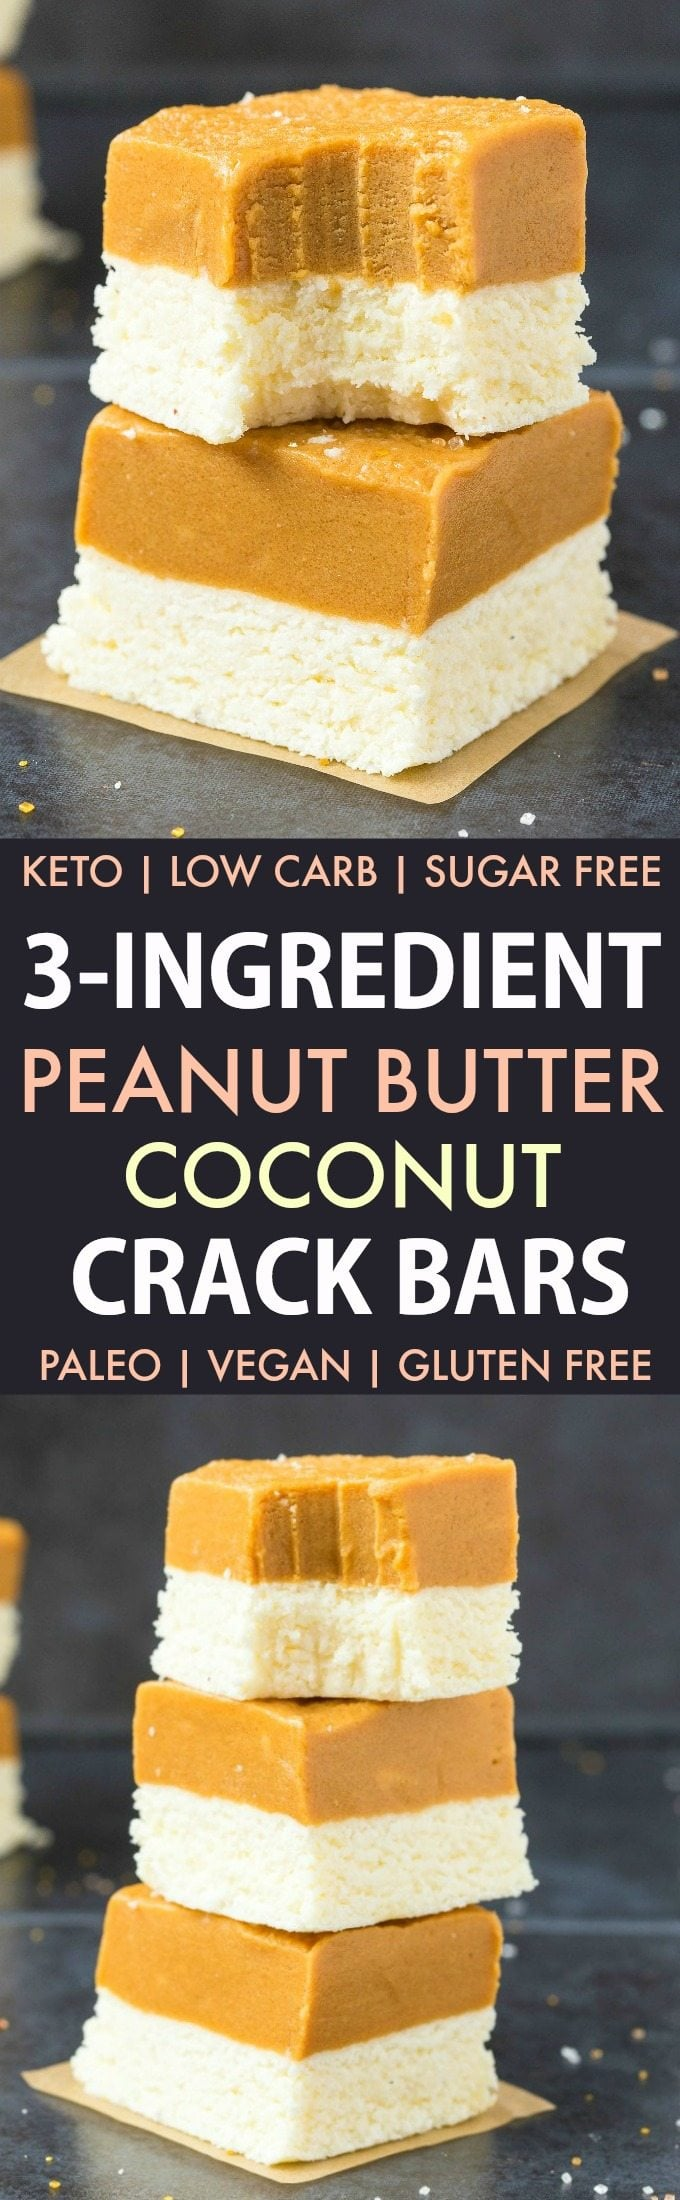 3-Ingredient No Bake Peanut Butter Coconut Crack Bars (Paleo, Vegan, Keto, Sugar Free, Gluten Free)-An Easy, healthy and seriously addictive no bake peanut butter coconut bars recipe using just 3 ingredients and needing 5 minutes! A delicious ketogenic dessert or snack! #keto #ketodessert #coconut #peanutbutter #ketosisrecipe #nobake | Recipe on thebigmansworld.com